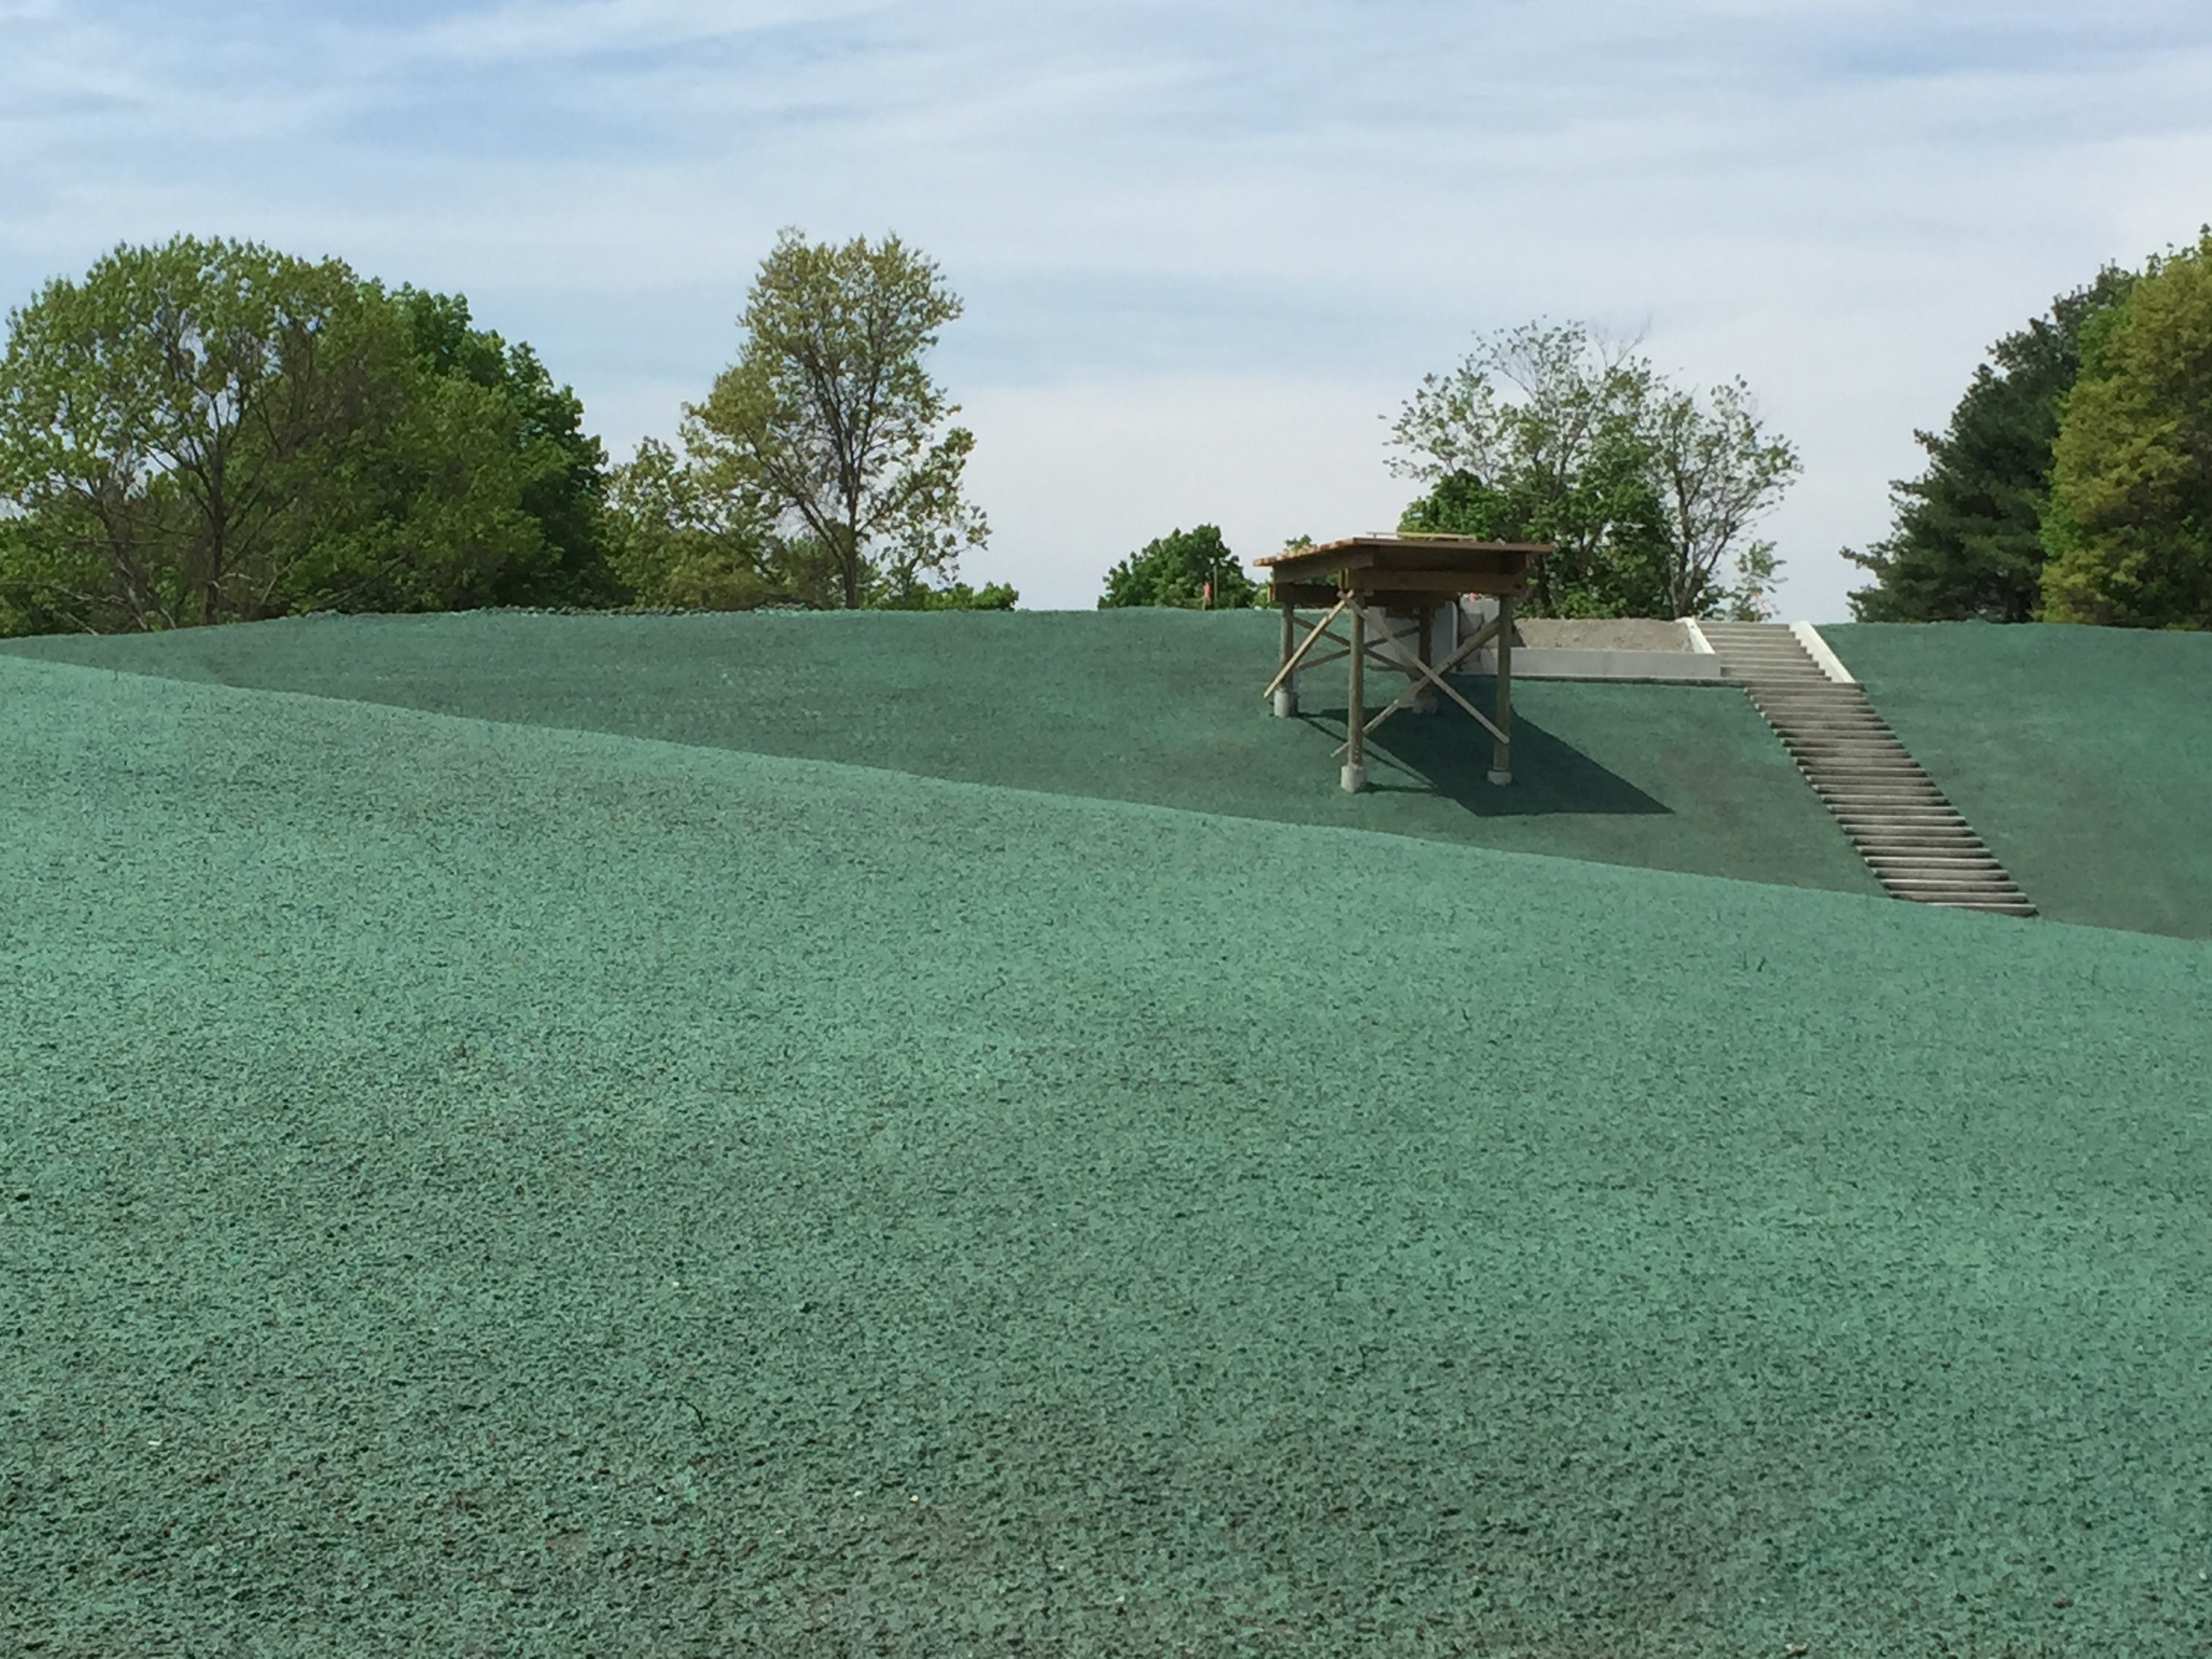 Viewing platform in a sea of green